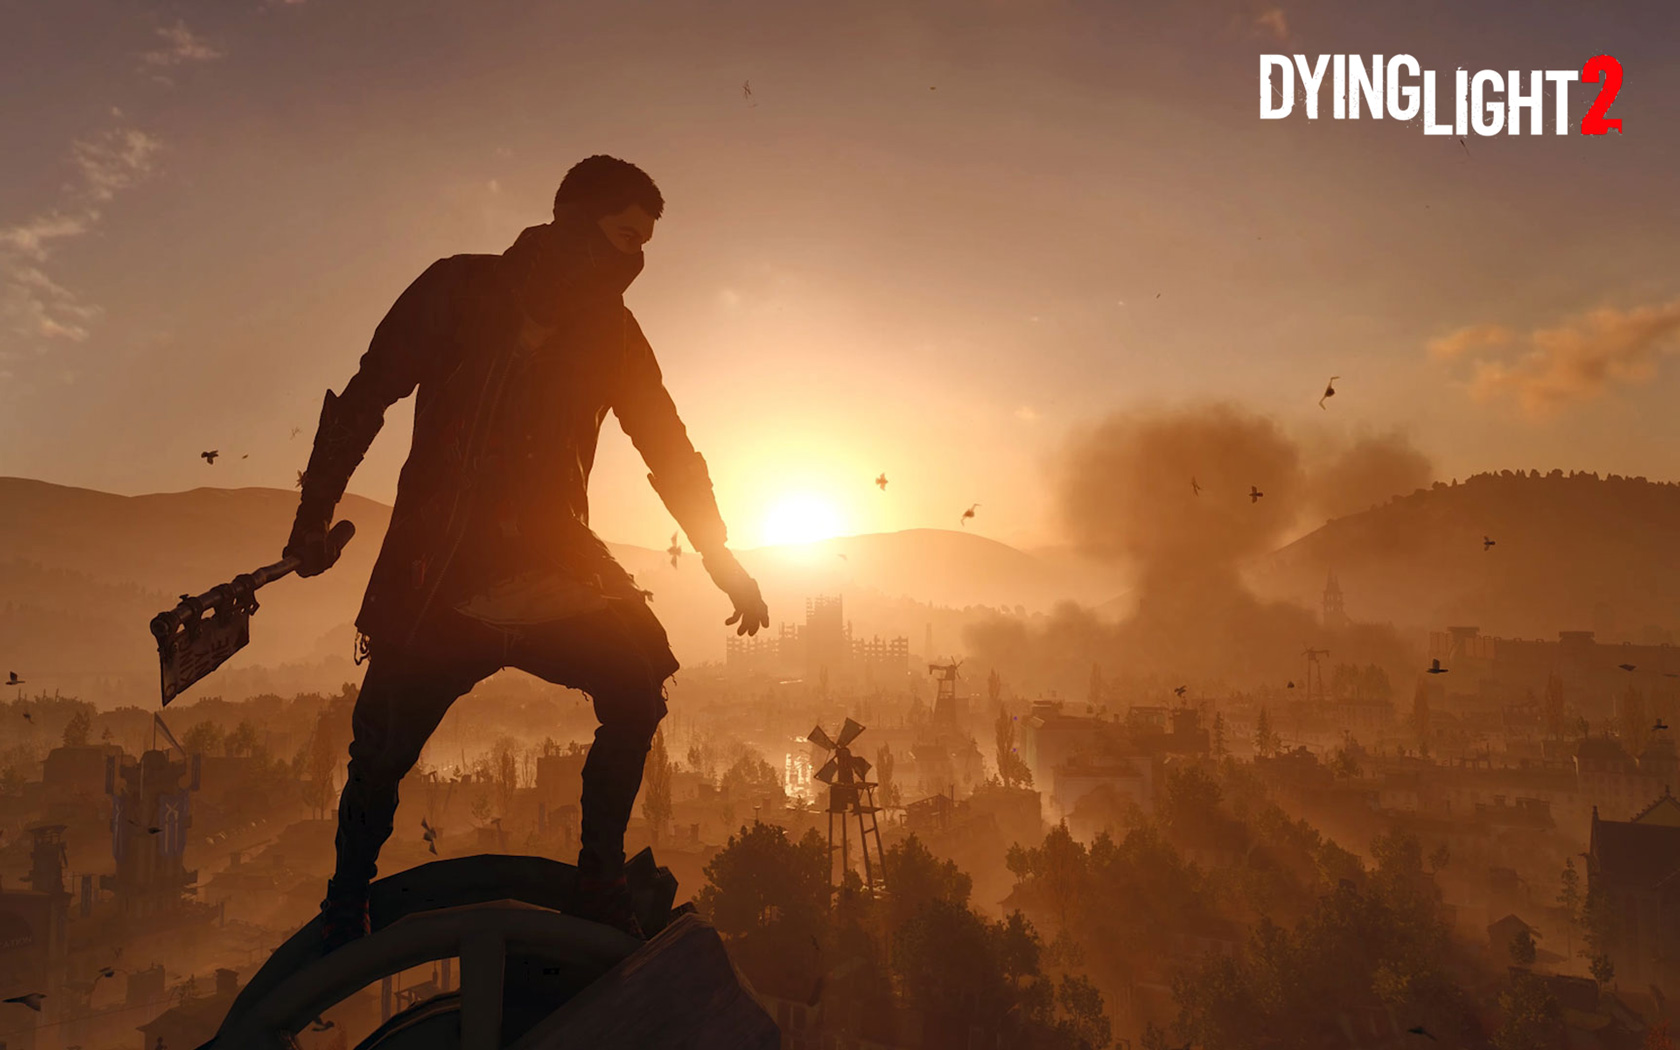 Free Dying Light 2 Wallpaper in 1680x1050